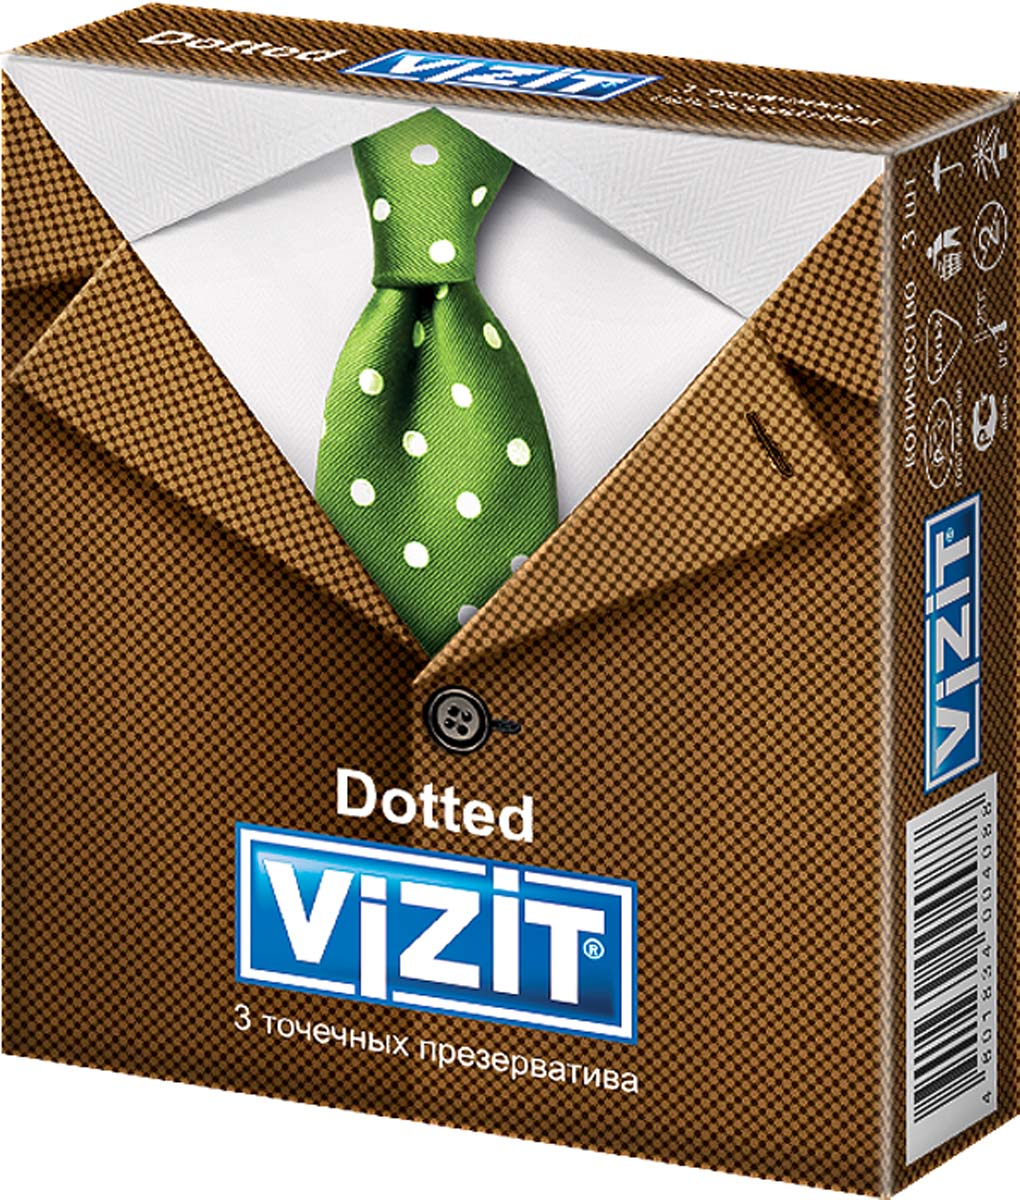 VIZIT Презервативы Dotted, точечные, 3 шт baile finish girl брюнетка секс кукла